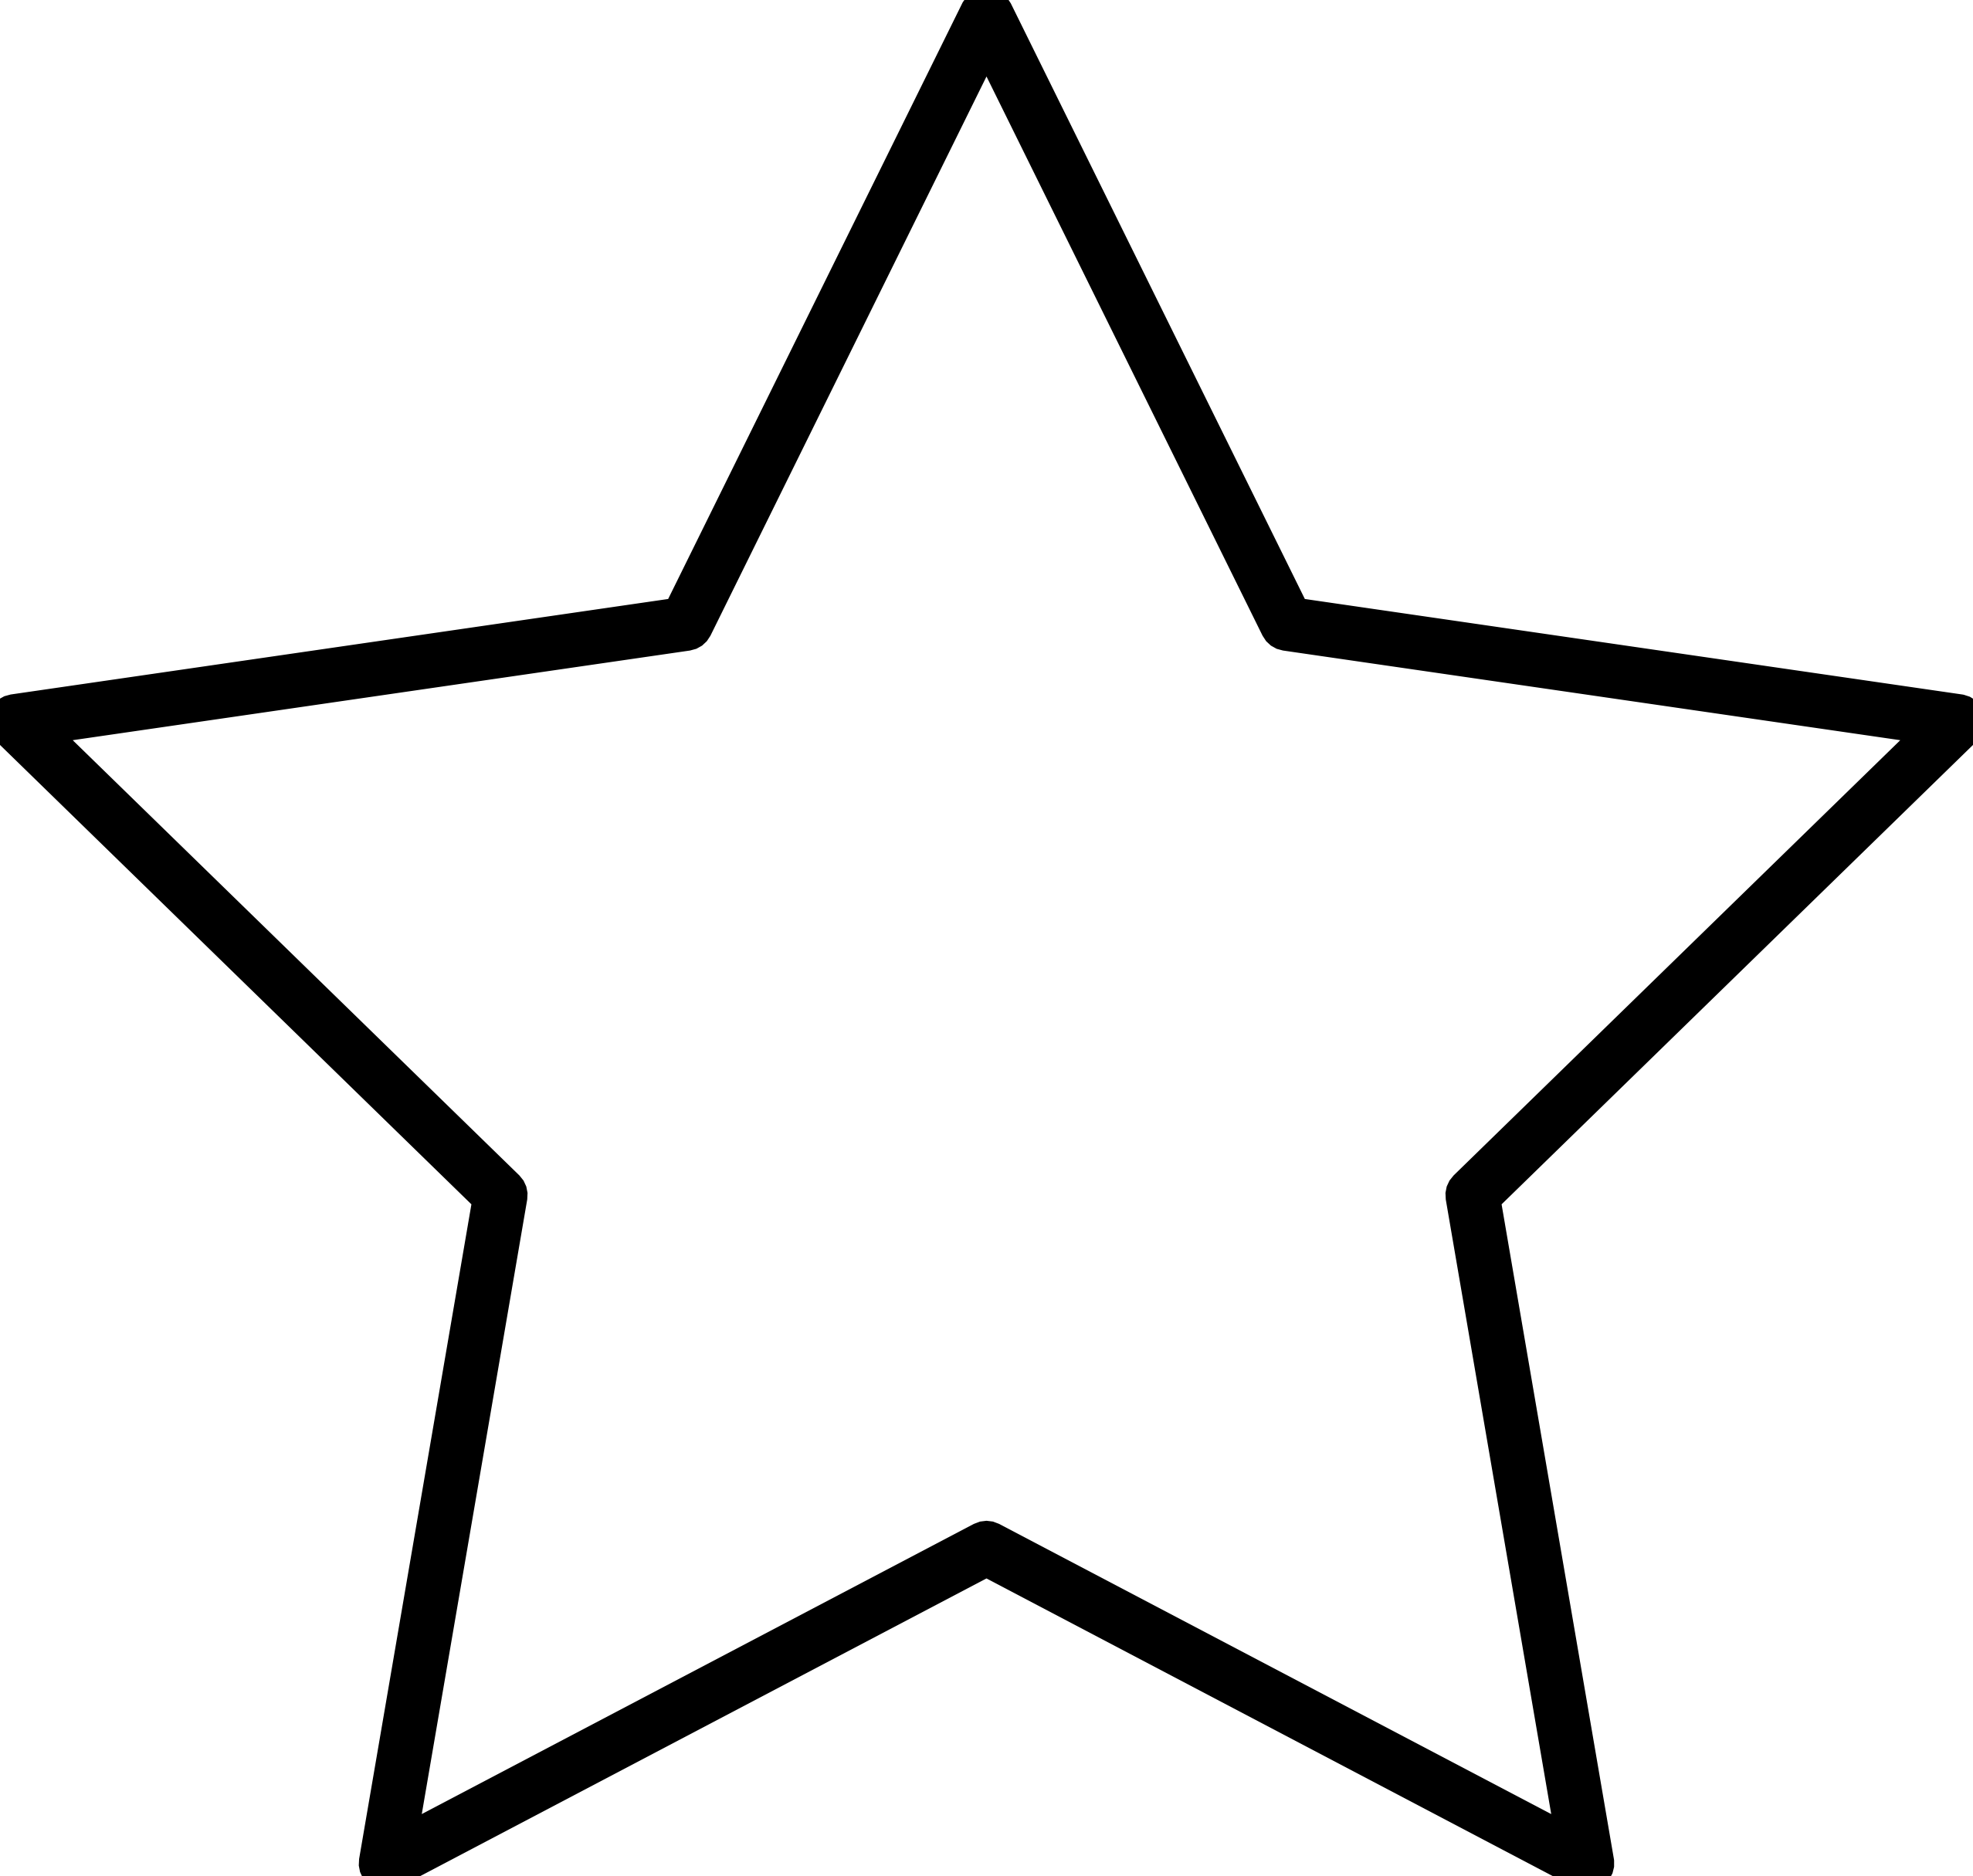 Star of david clipart black and white banner freeuse download Star Of David Silhouette at GetDrawings.com | Free for personal use ... banner freeuse download